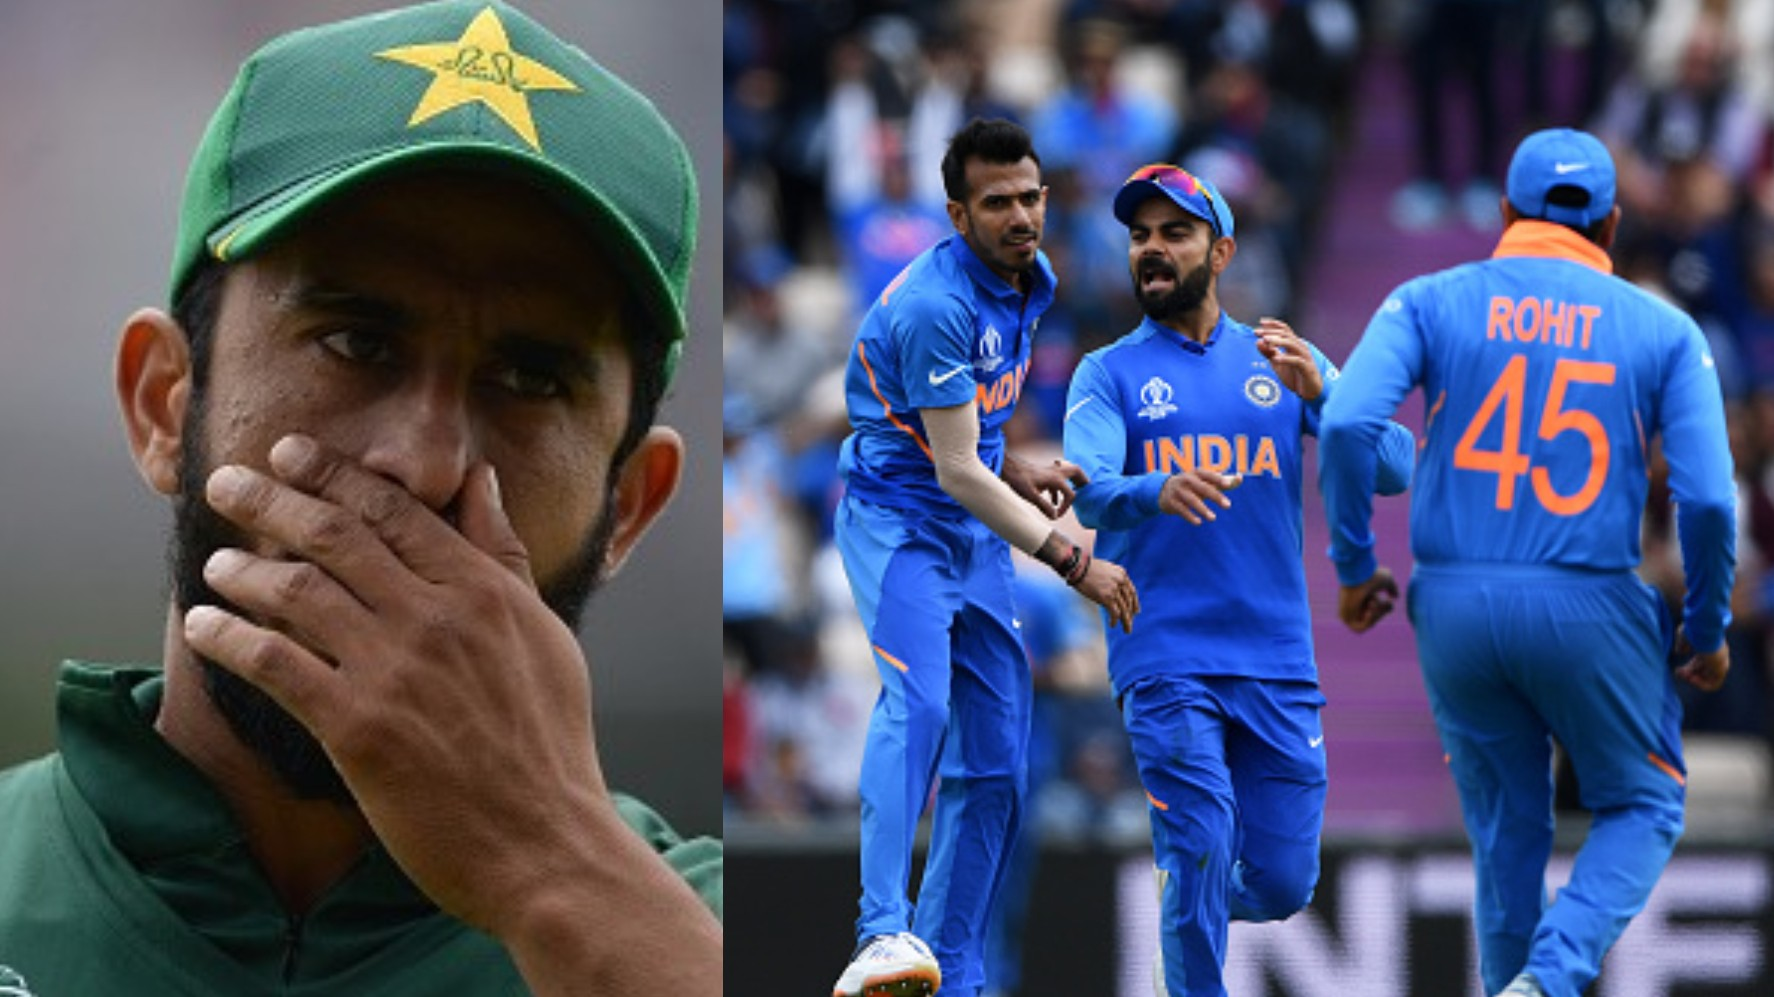 CWC 2019: Pakistan pacer Hassan Ali wishes for India's World Cup win